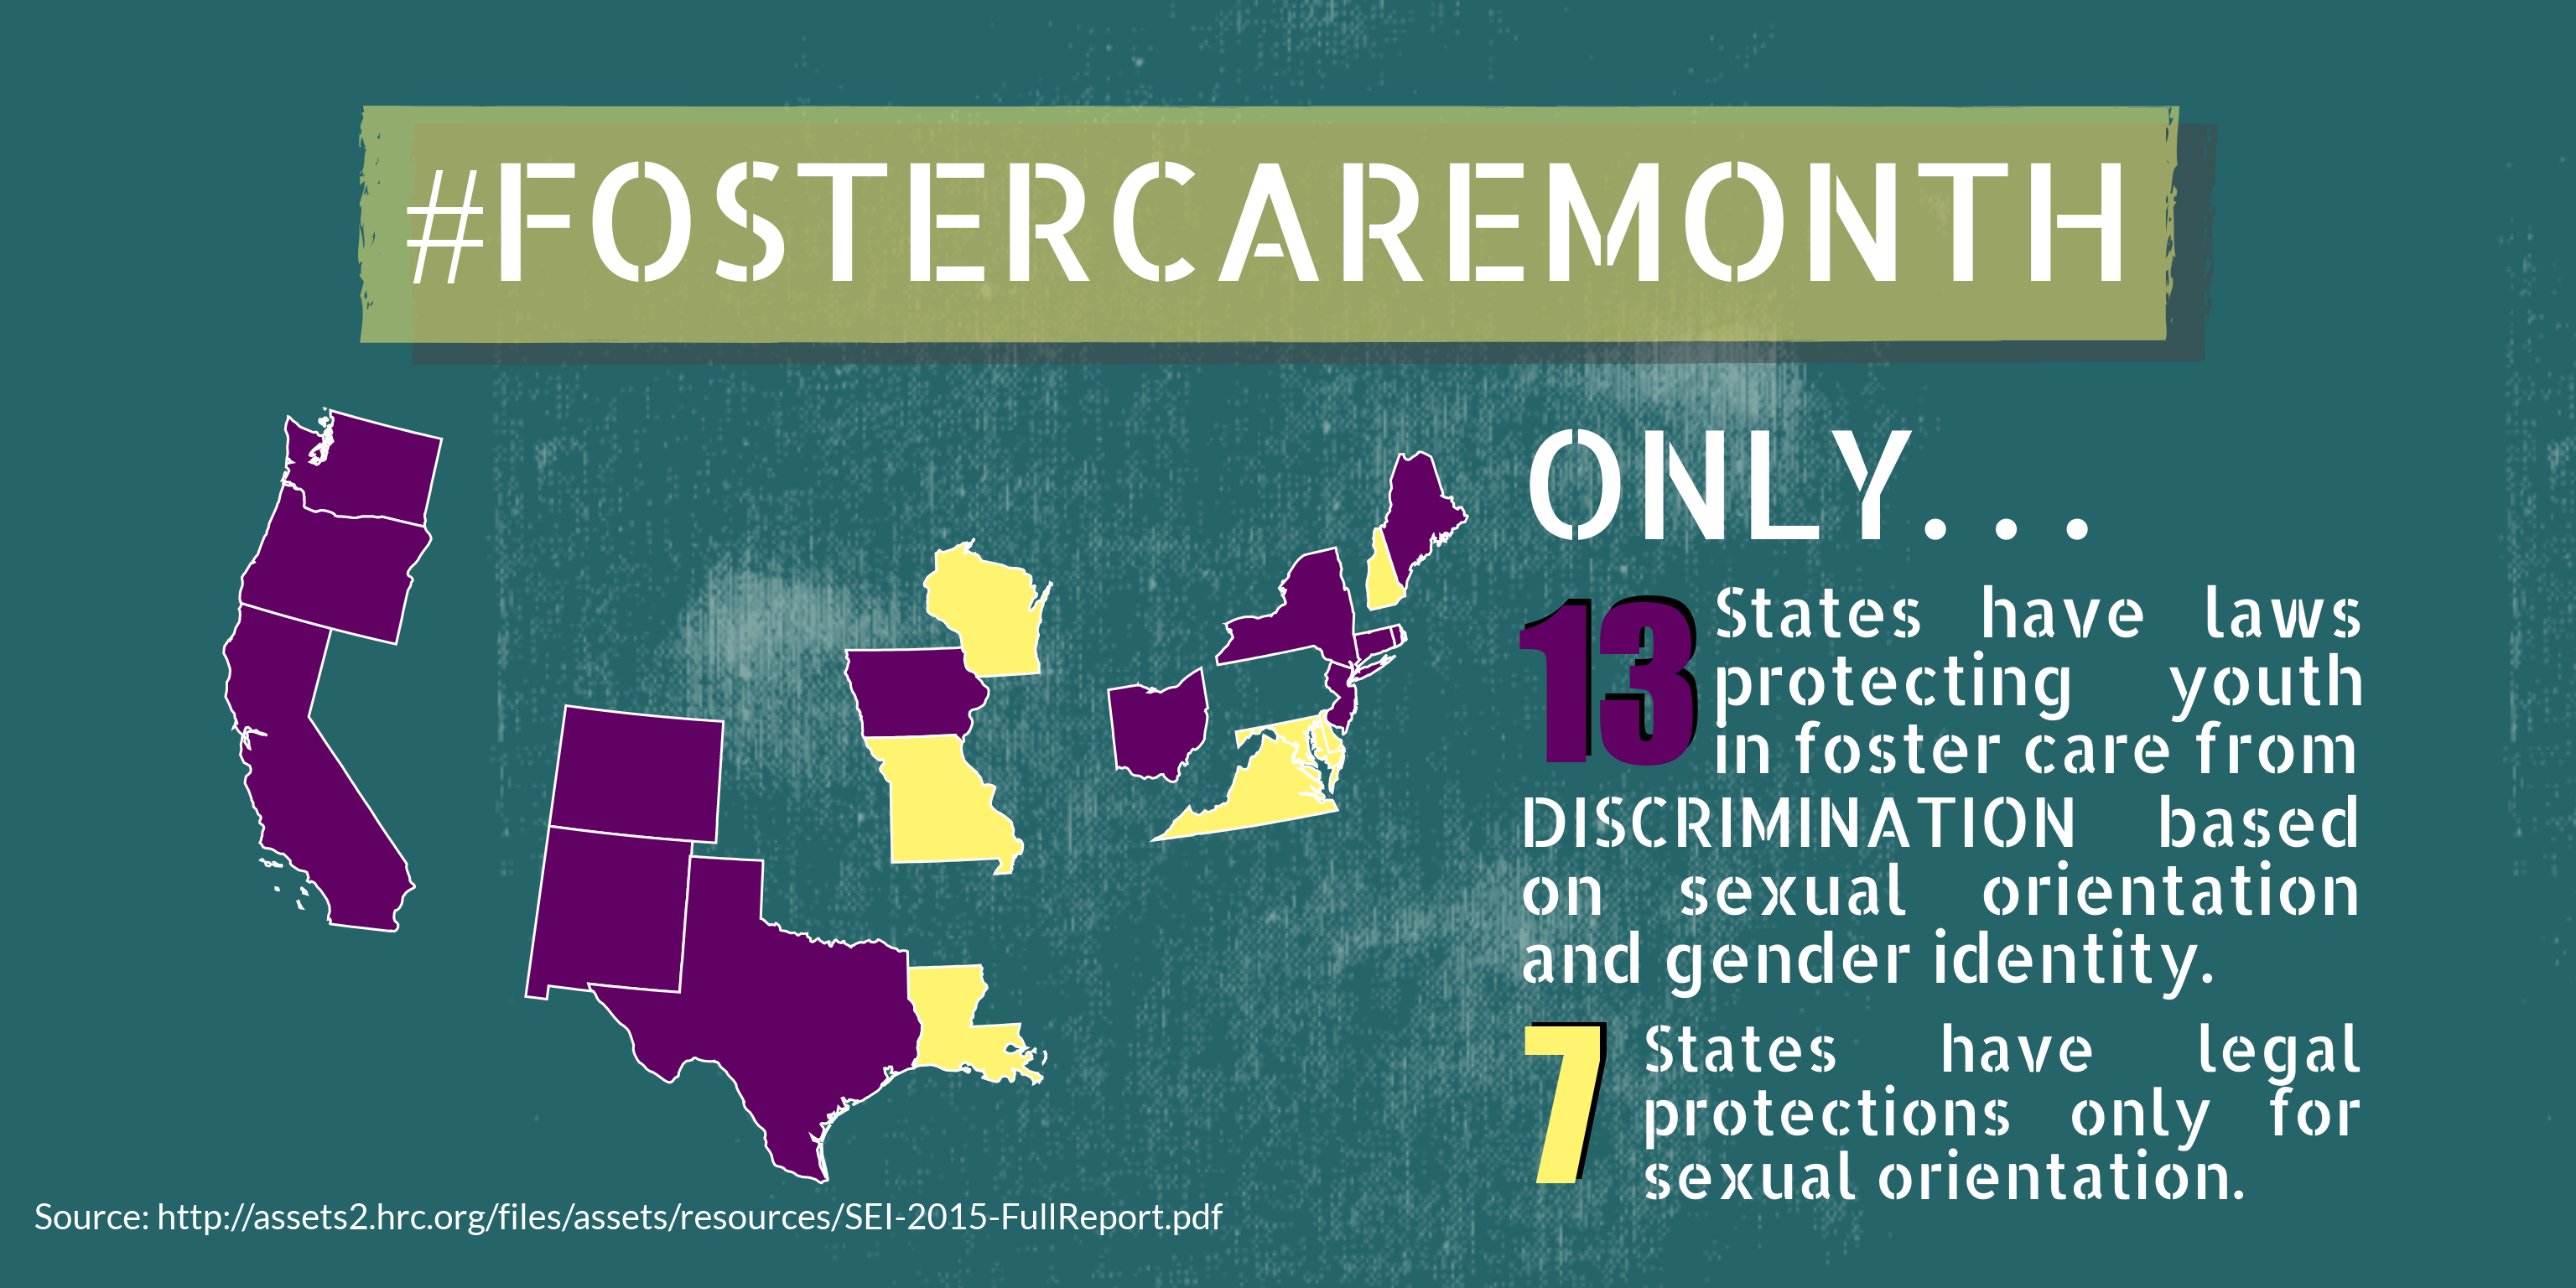 Infographic: only 13 states protect youth in foster care from discrimination based on sexual orientation and gender identity.